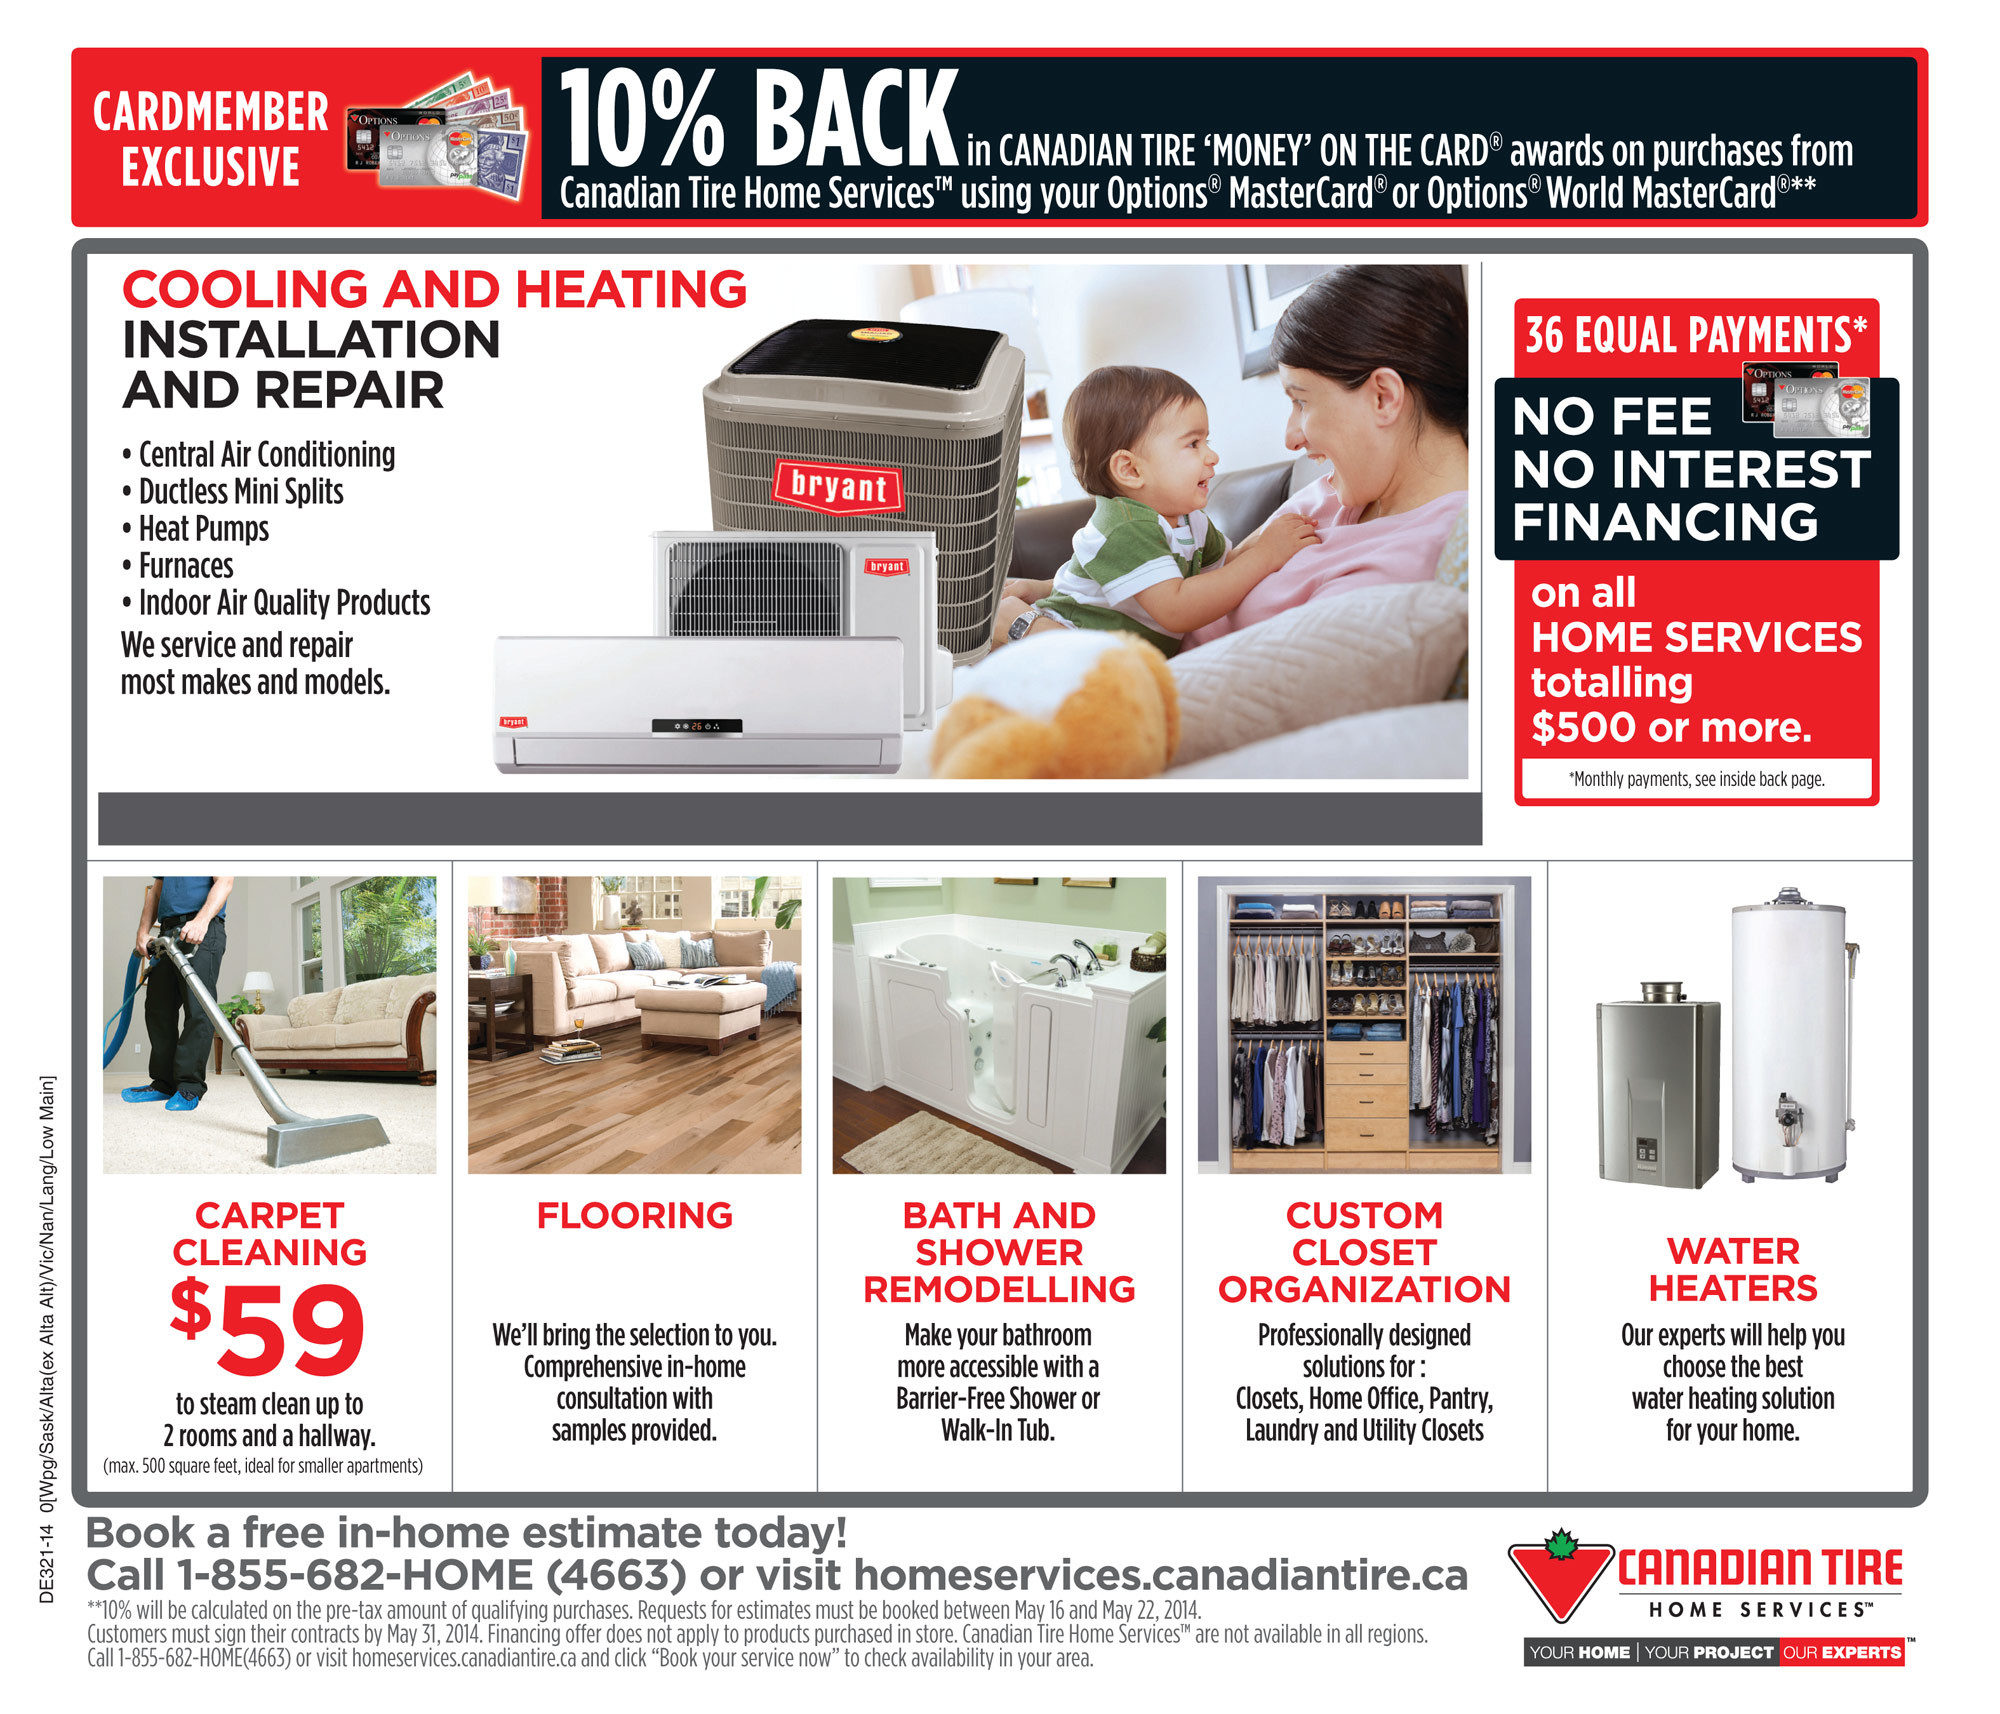 Canadian Tire Weekly Flyer - Weekly Flyer - May 15 – 21 - RedFlagDeals.com